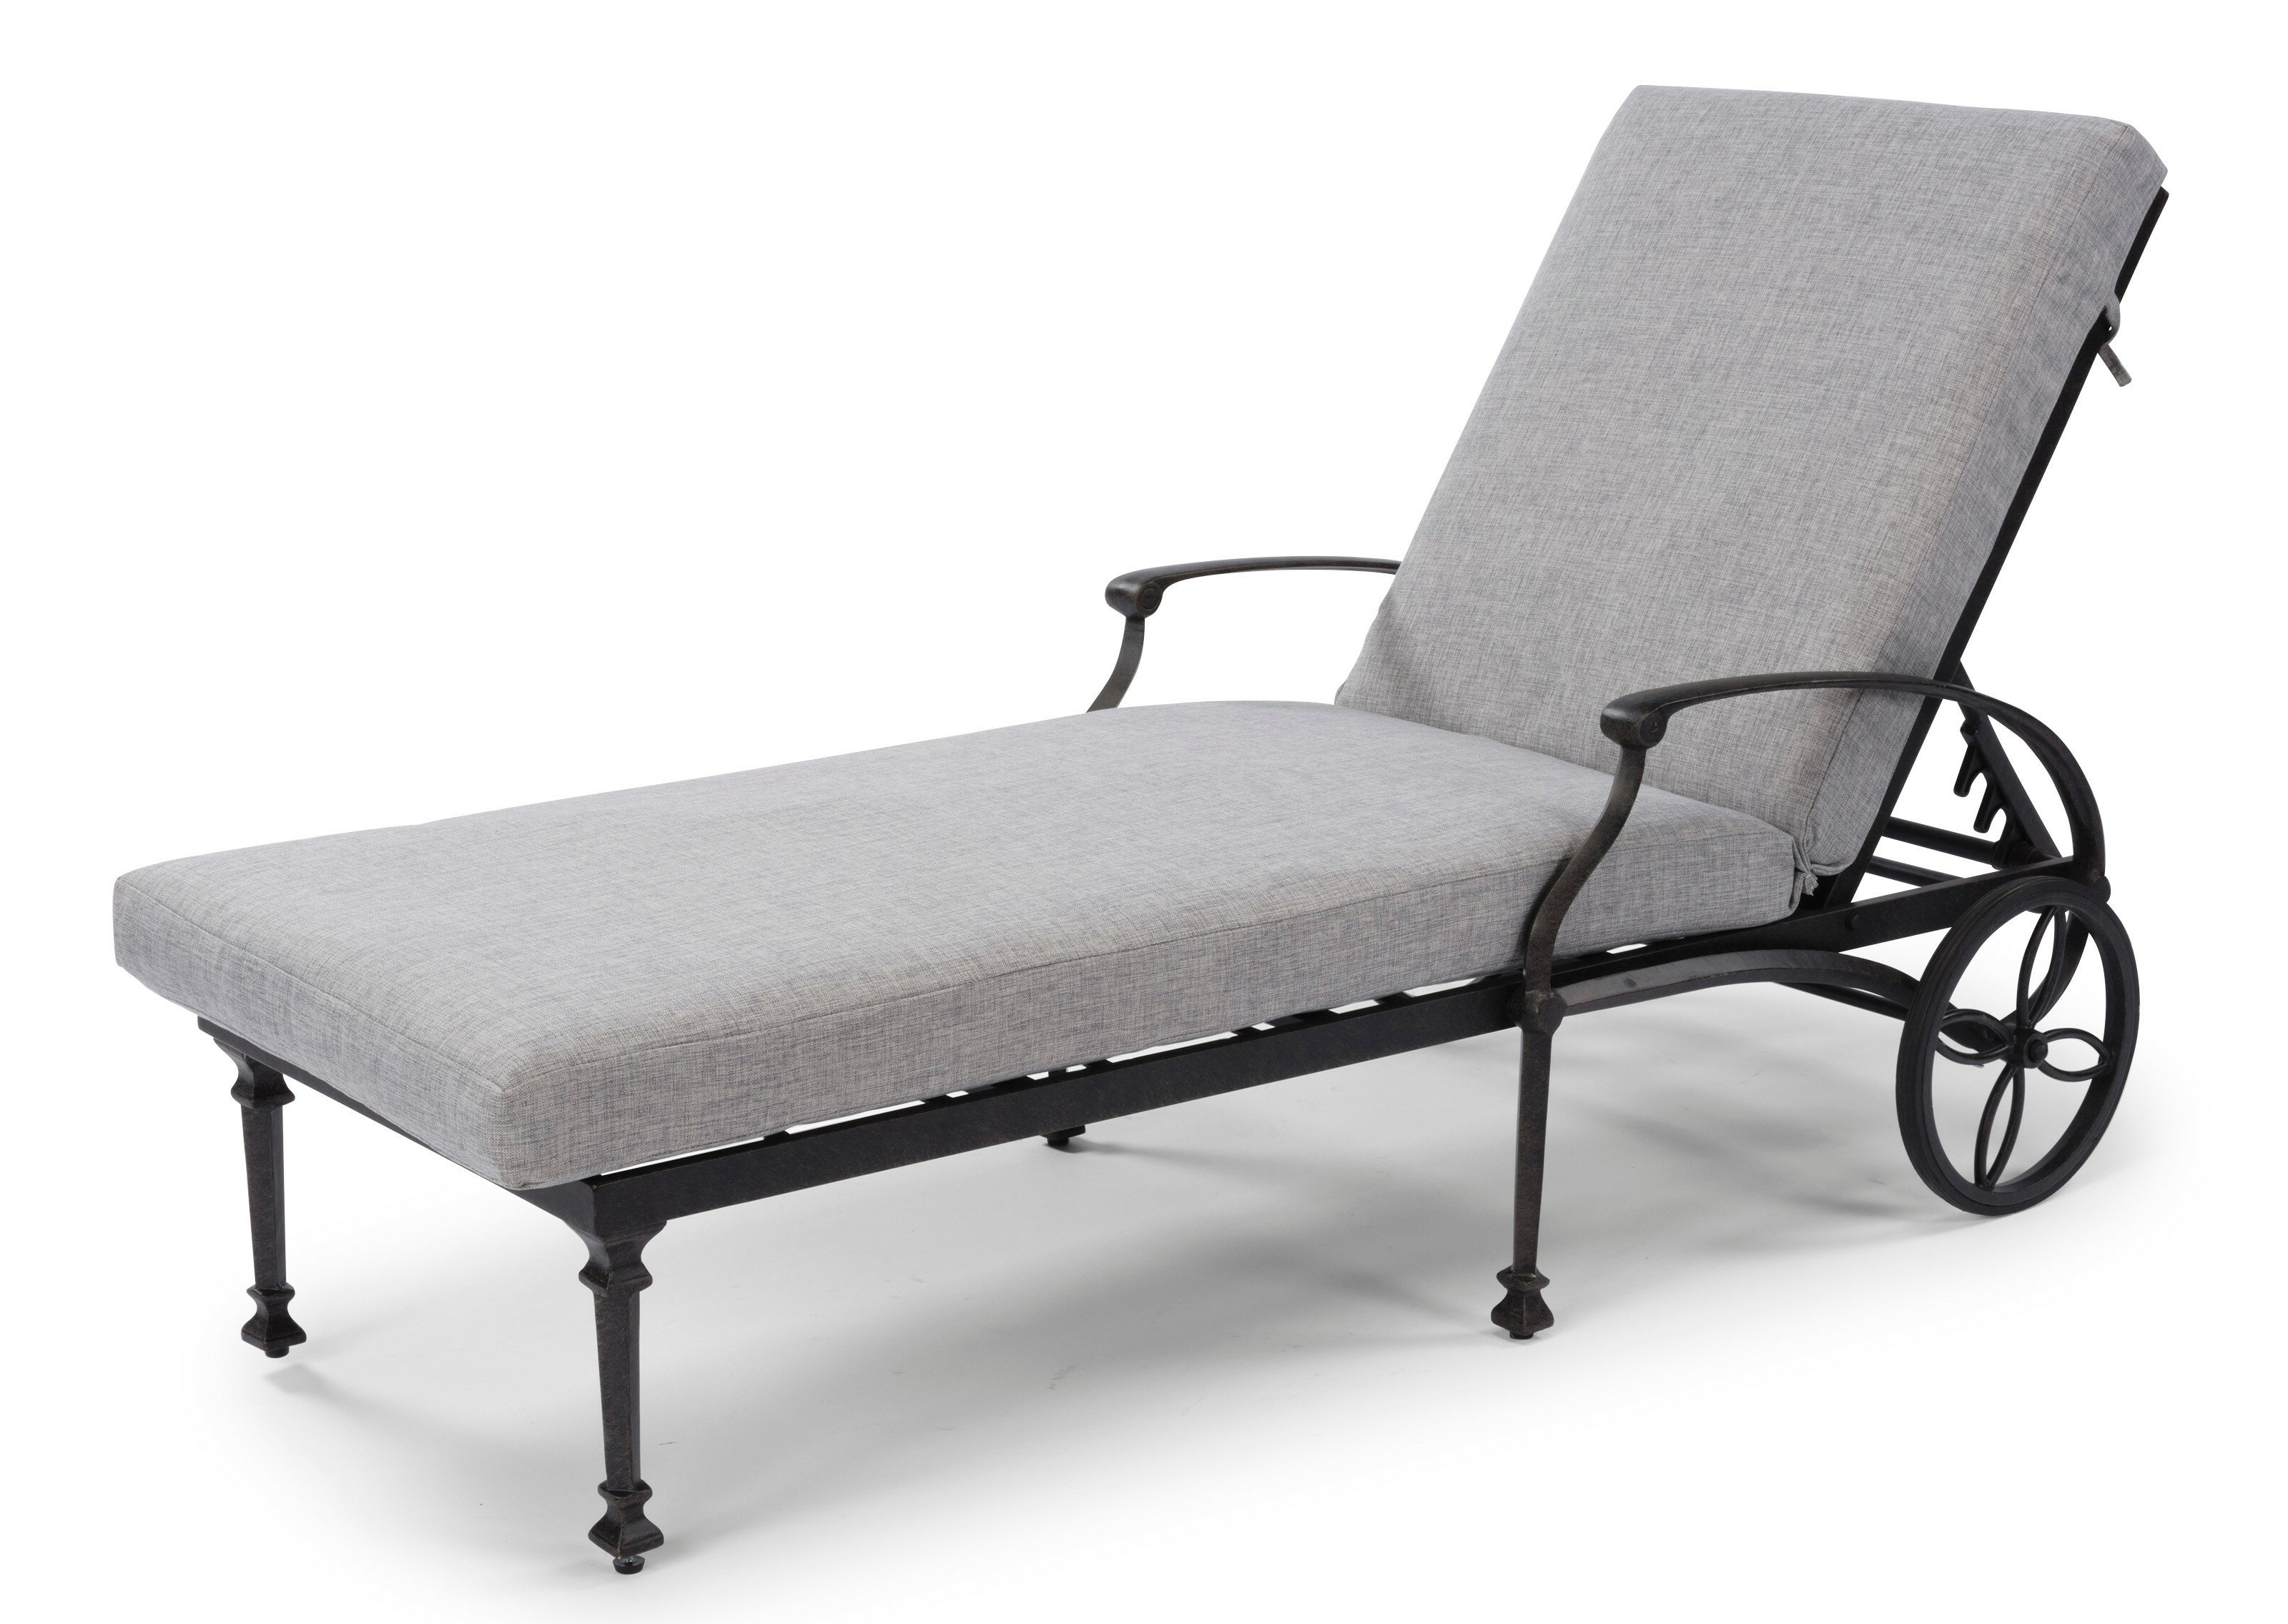 Preferred Flagg Cast Aluminum Outdoor Chaise Lounge With Cushion Pertaining To Aluminum Wheeled Chaise Lounges (View 20 of 25)